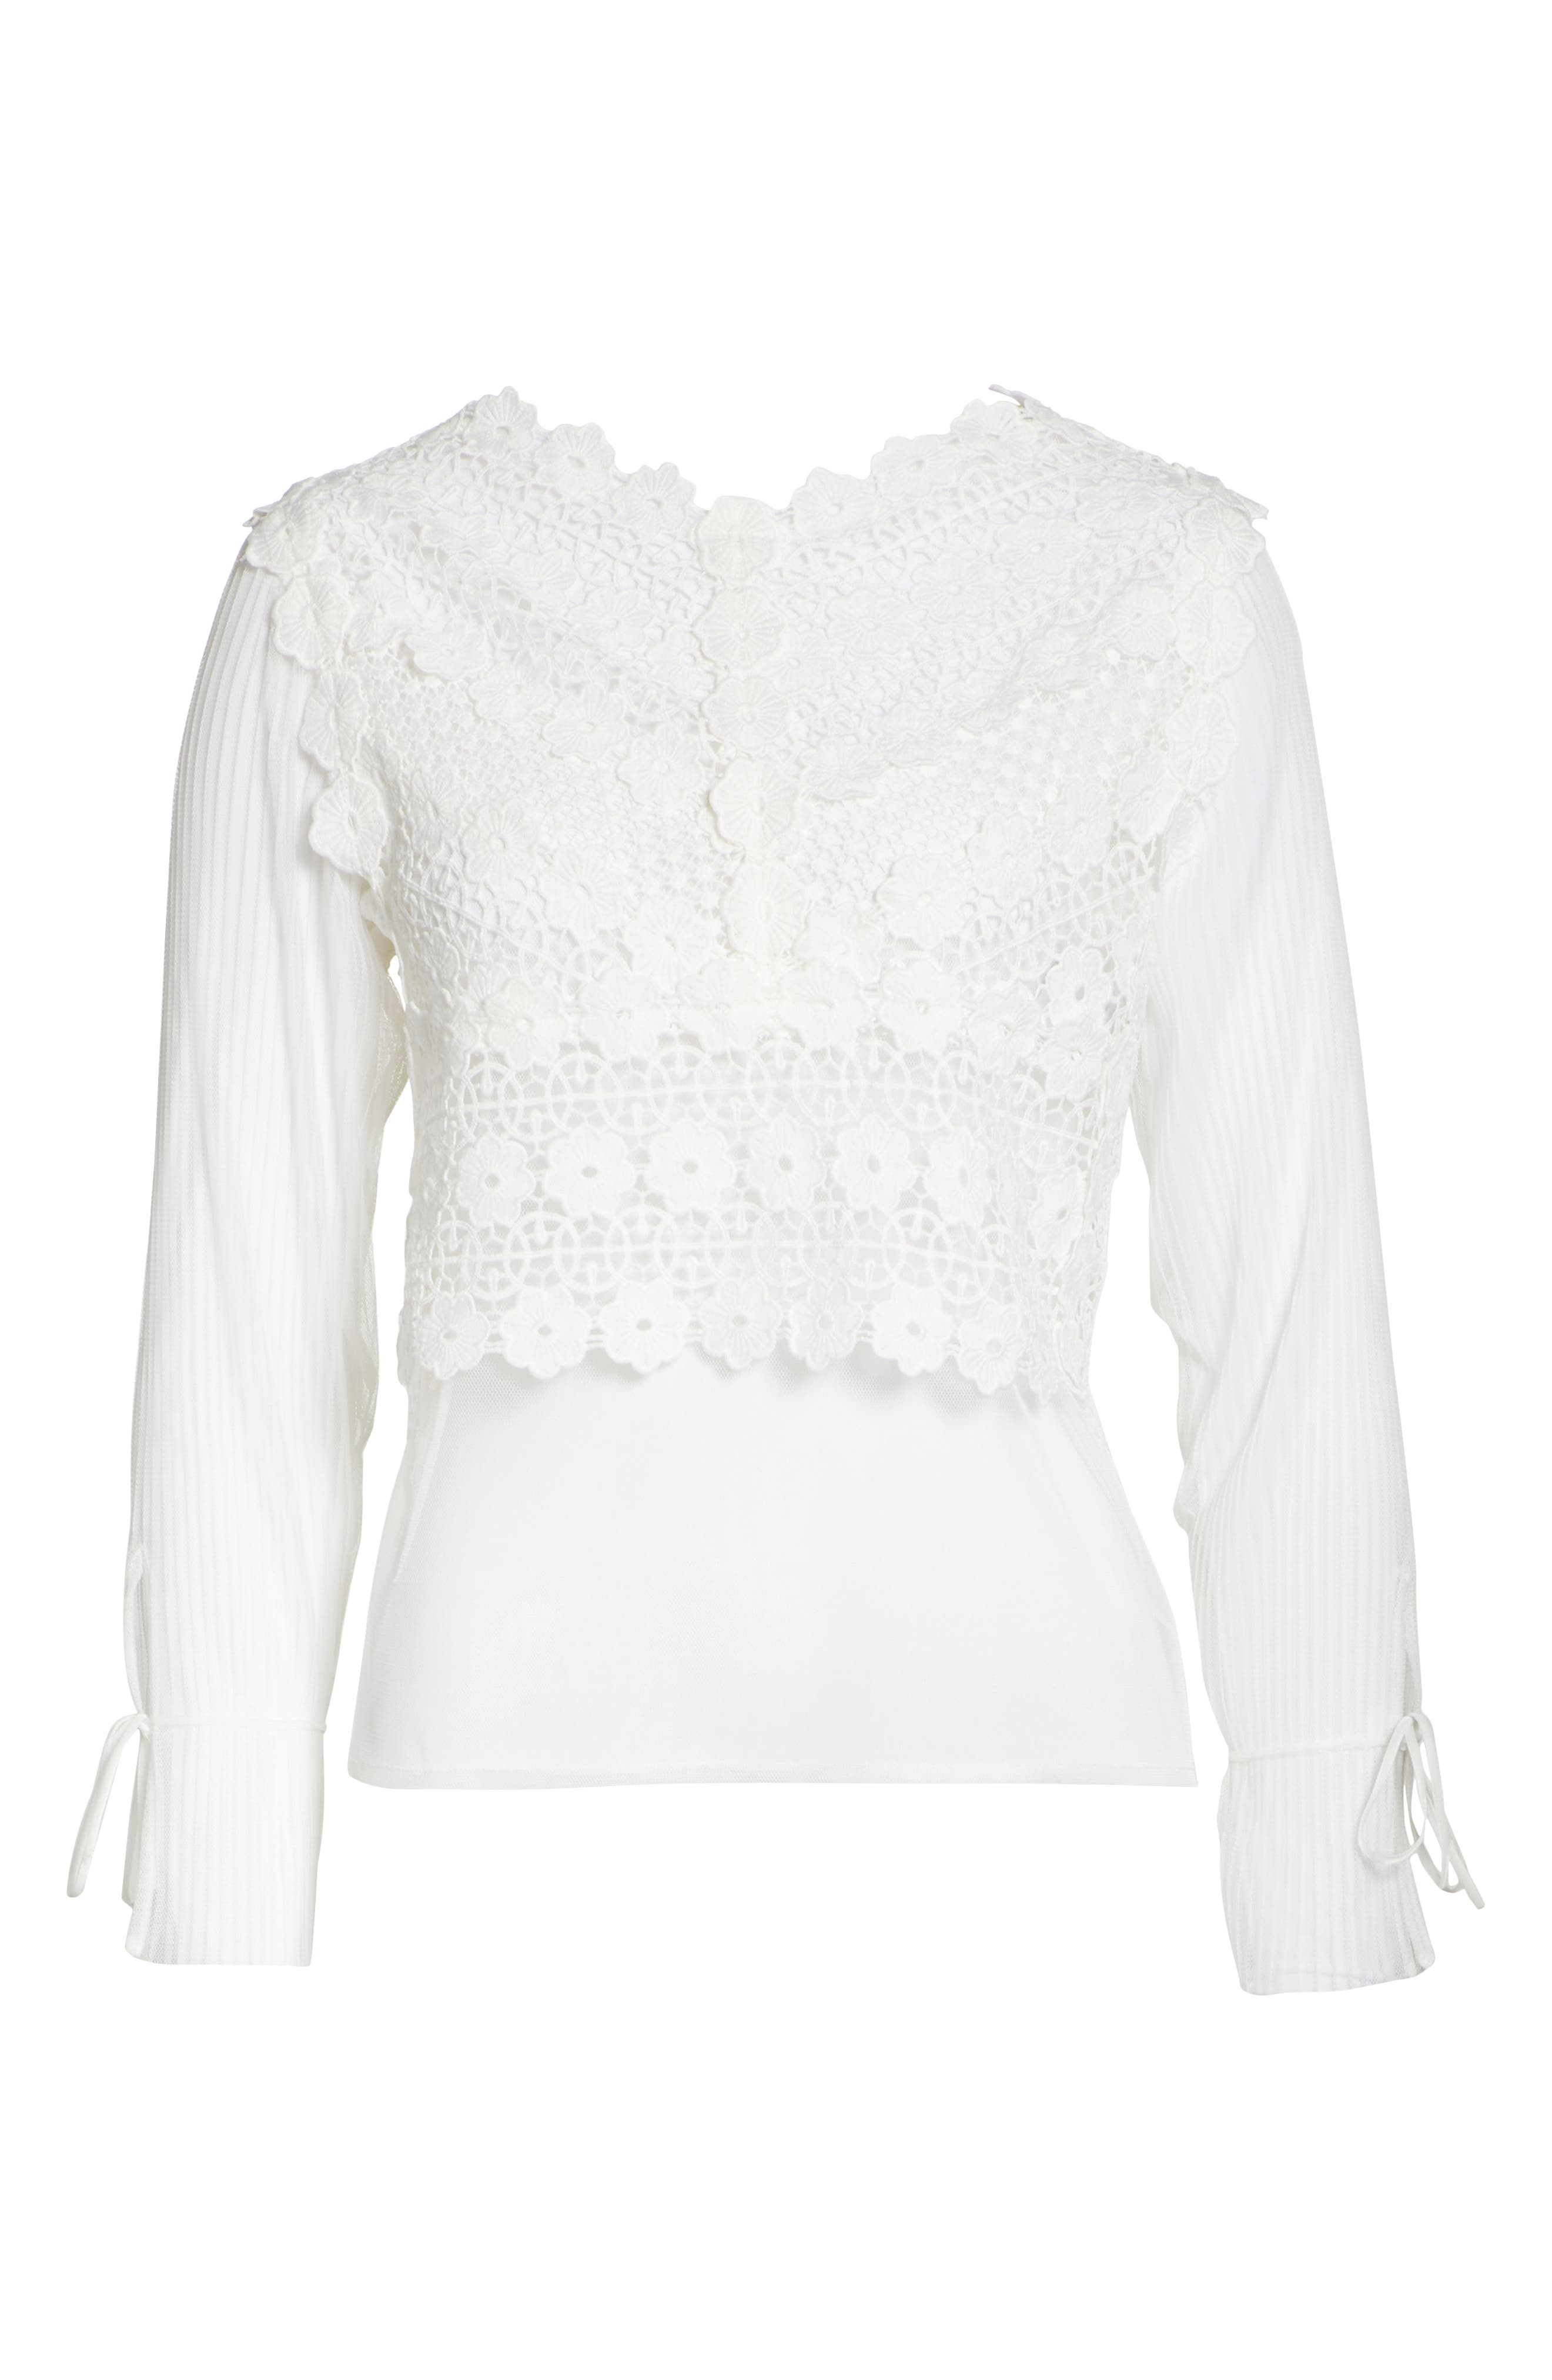 Tulle Lace Top,                             Alternate thumbnail 6, color,                             100